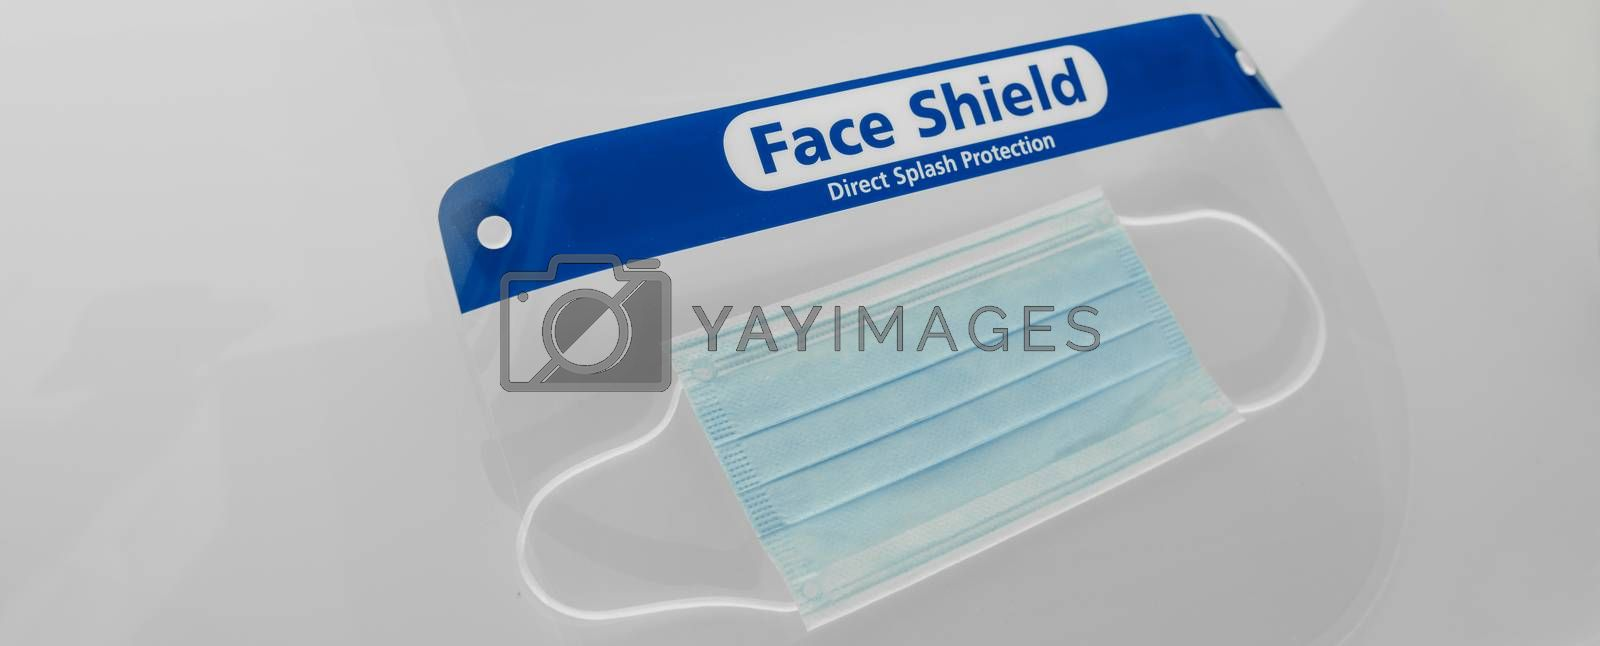 PPE for covid and corona virus. Medical mask and face shield protective equipment for healthcare workers and business. Panoramic banner crop of face covering protection by Maridav